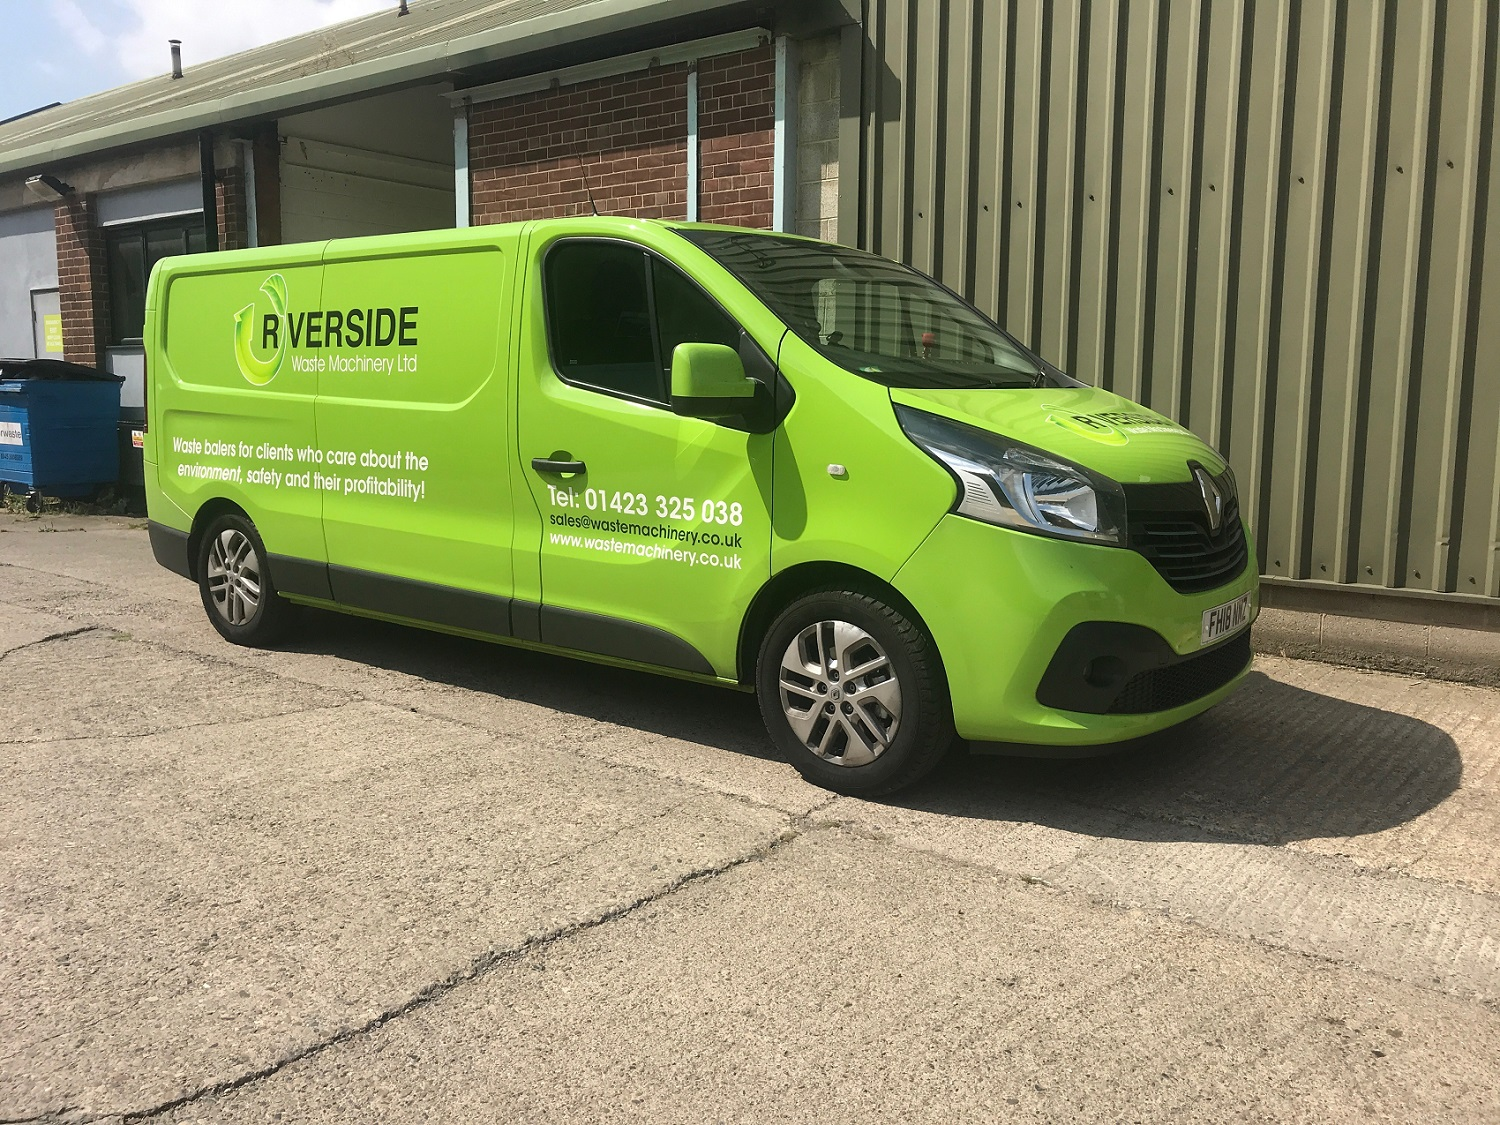 New van and signage for Riverside